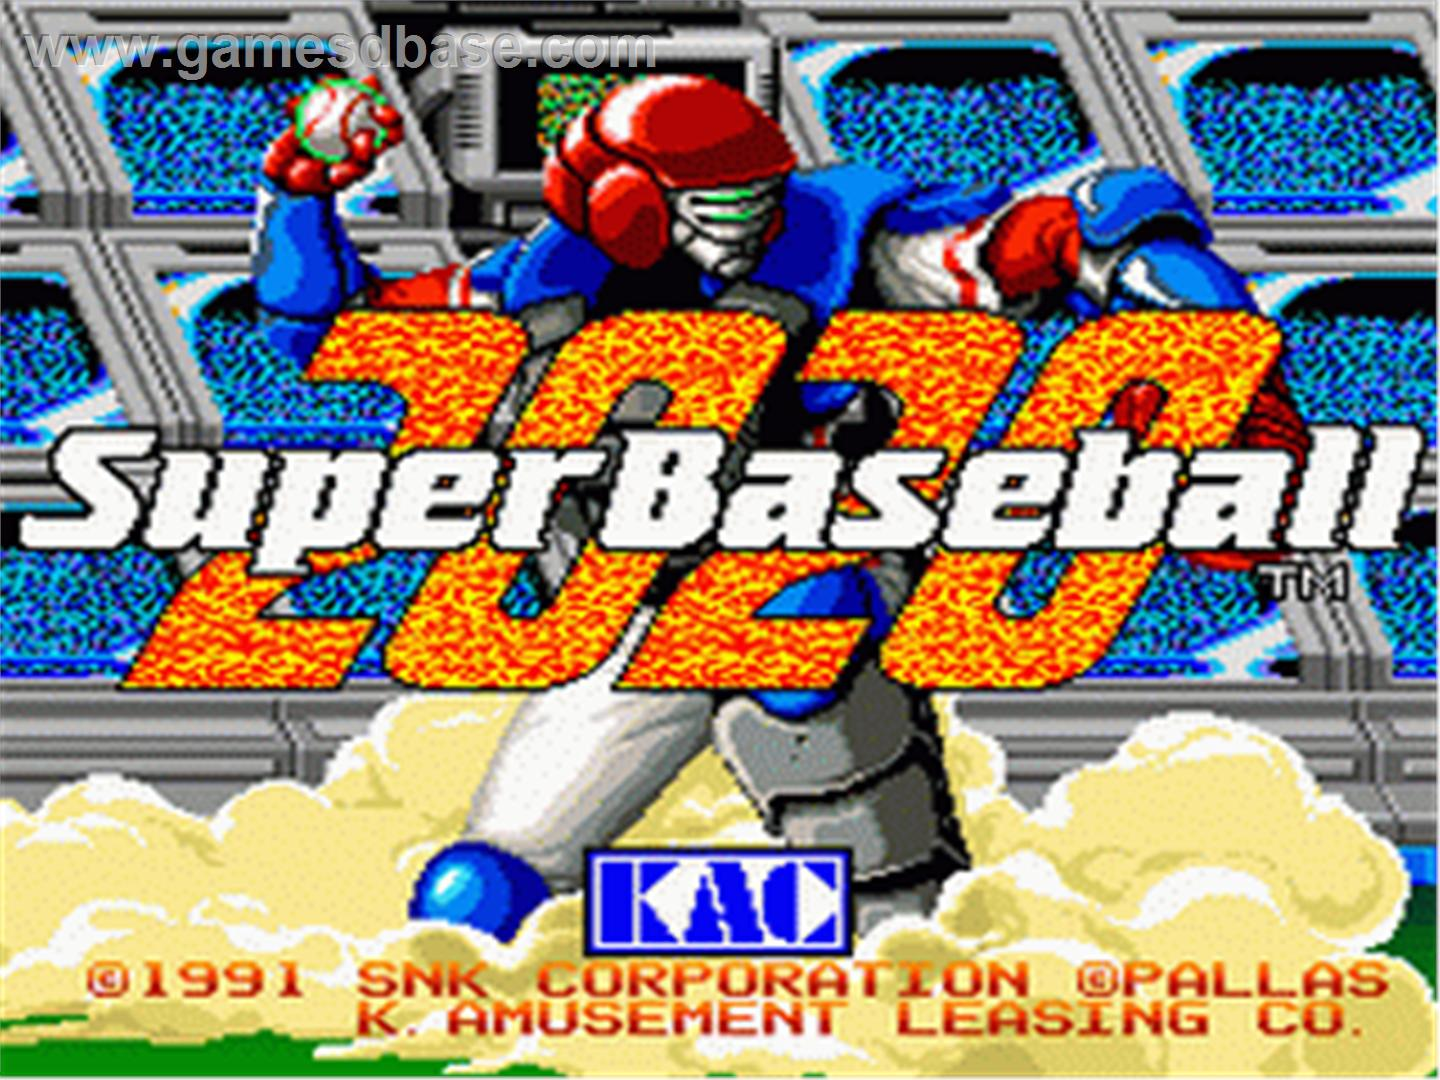 1440x1080 > 2020 Super Baseball Wallpapers